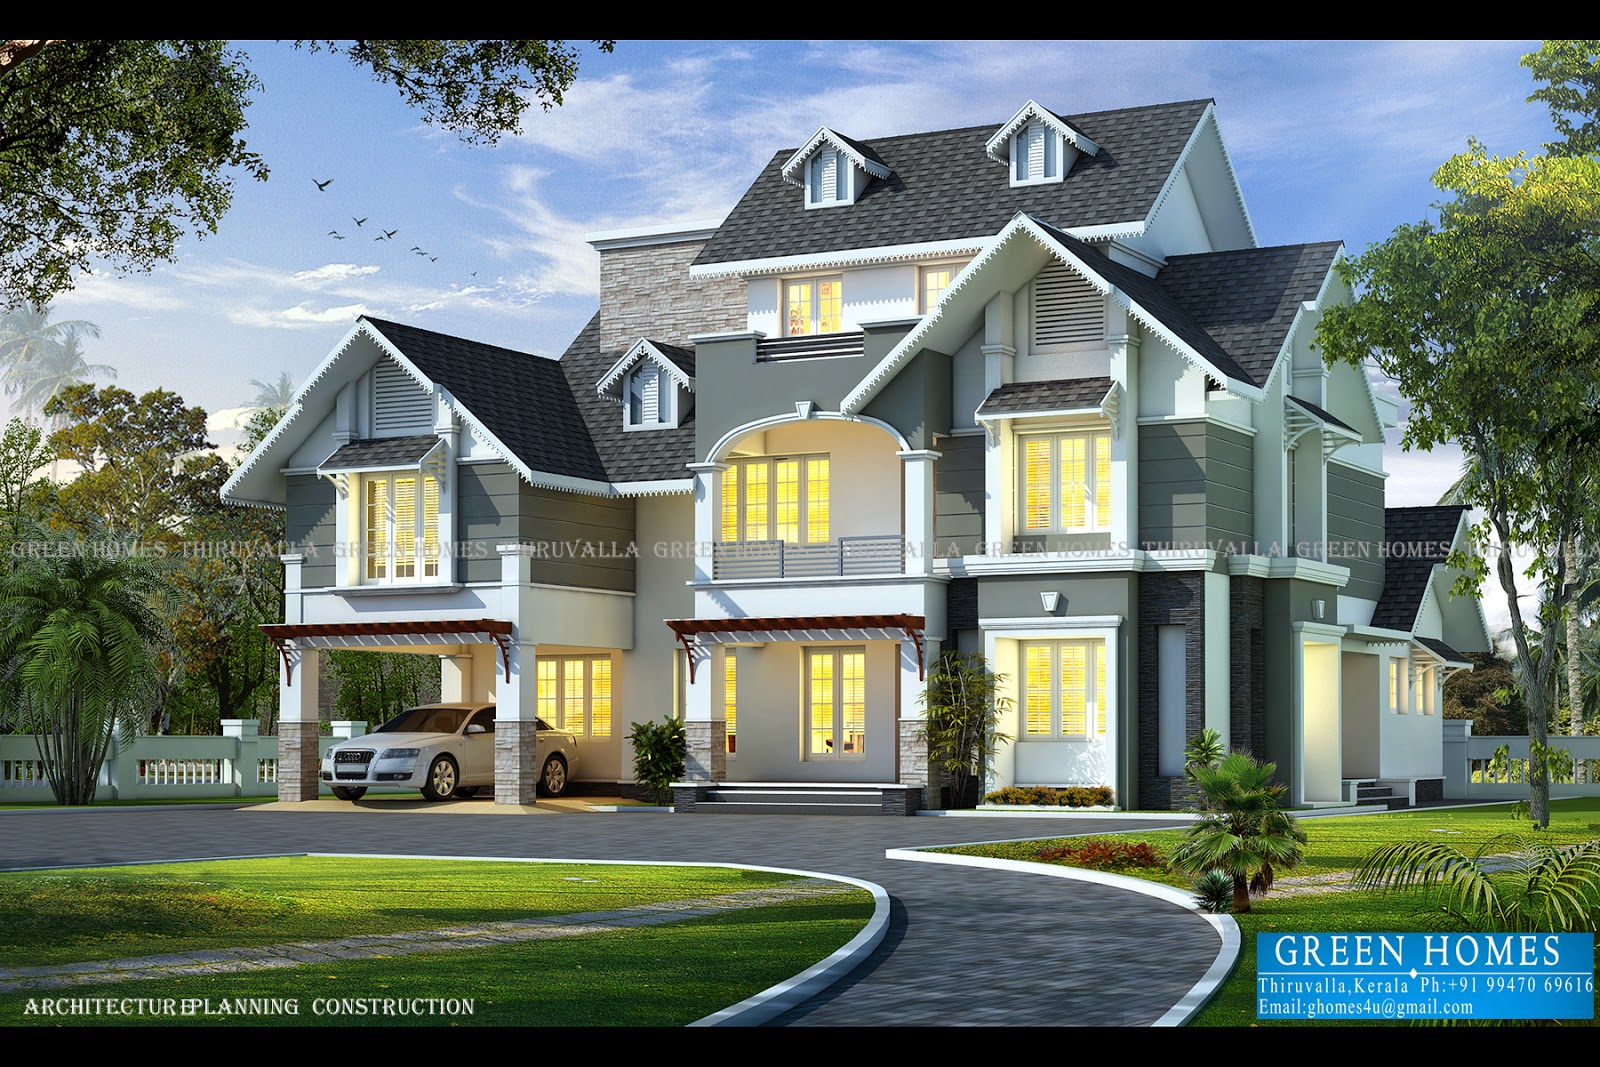 Green homes awesome european style house in 3650 sq feet for Green homes designs